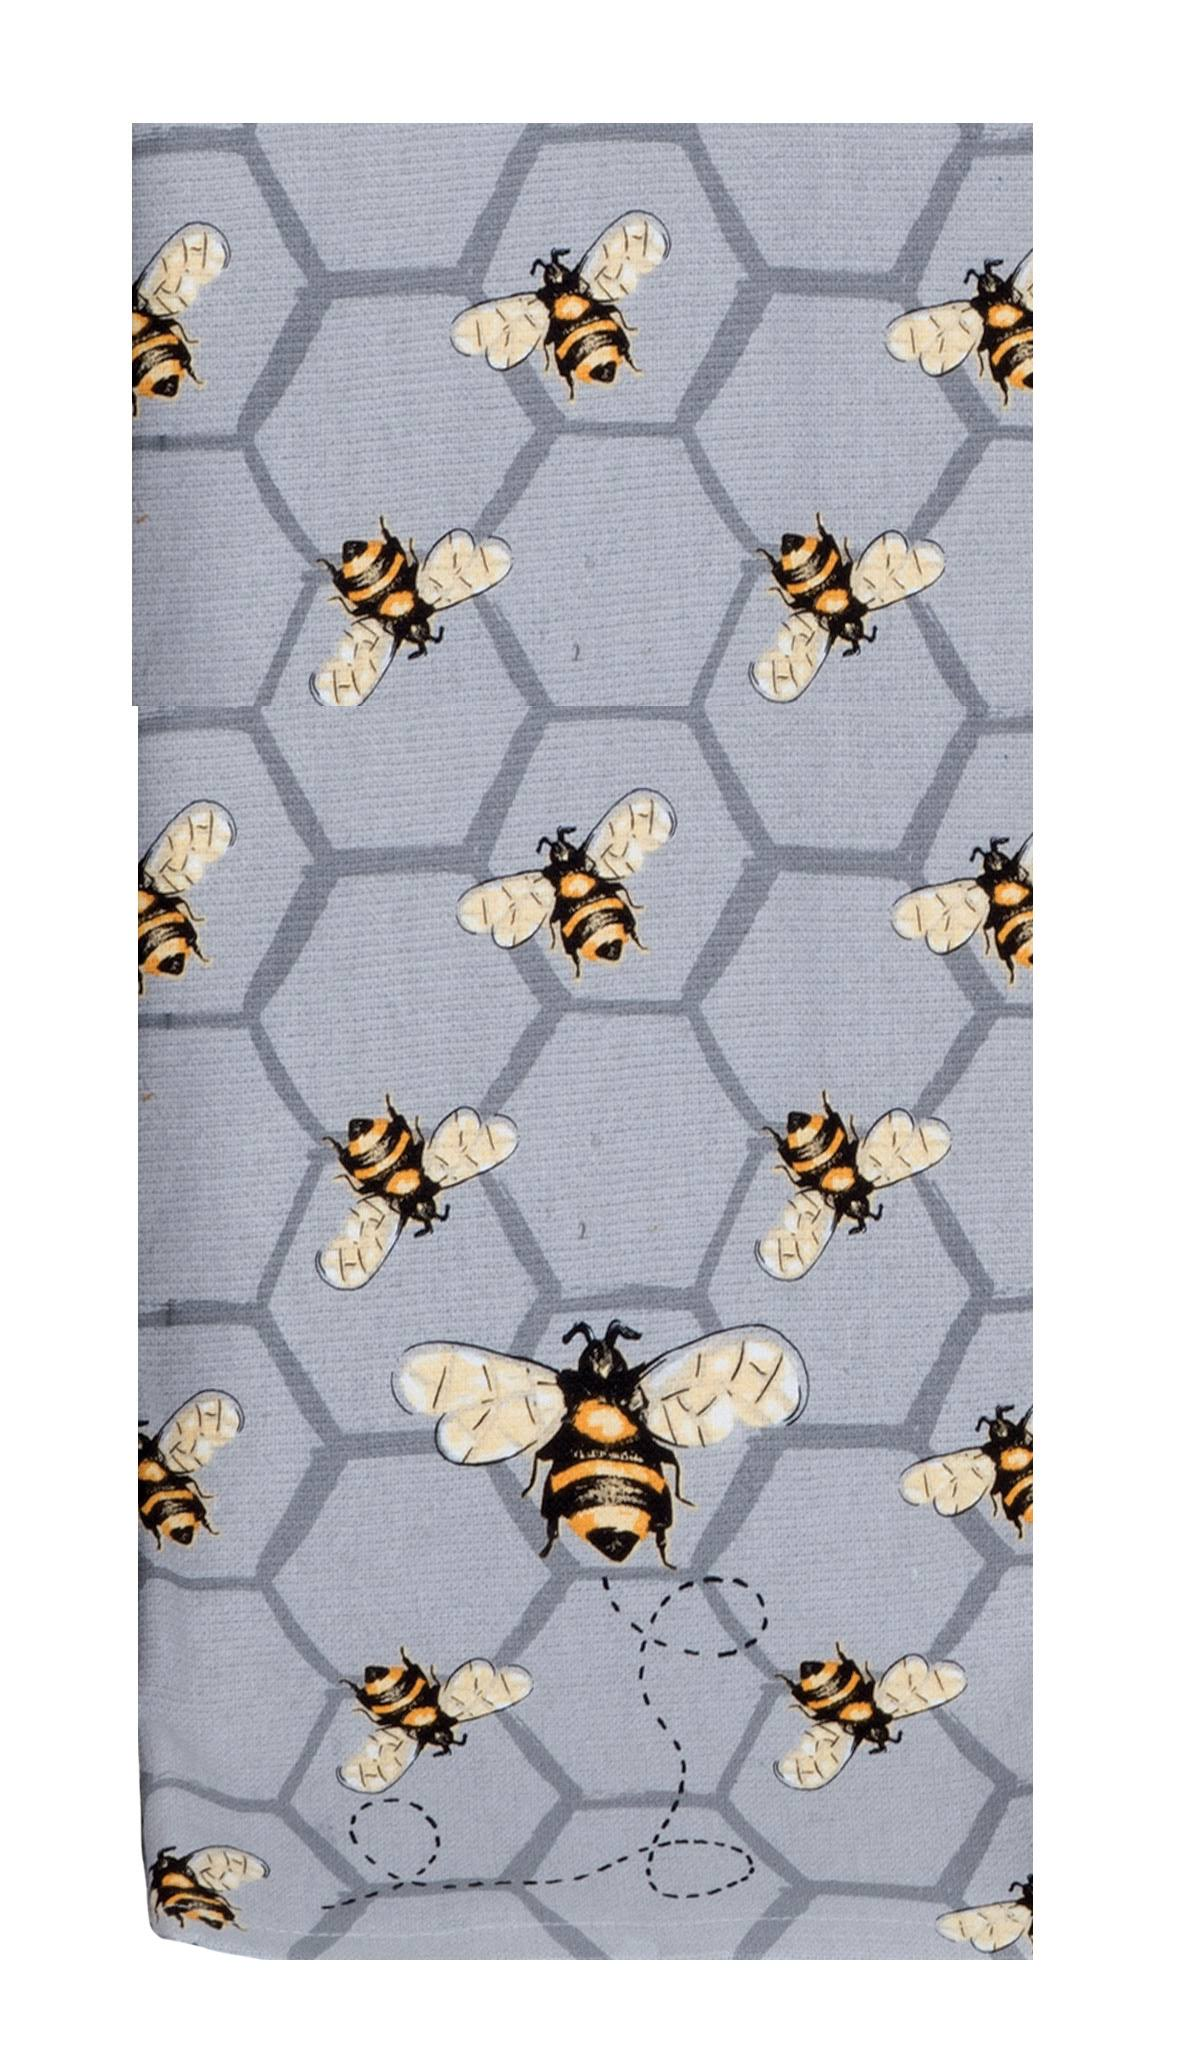 For A Well Dressed Kitchen Towel, Dual Purpose, Bee Inspired